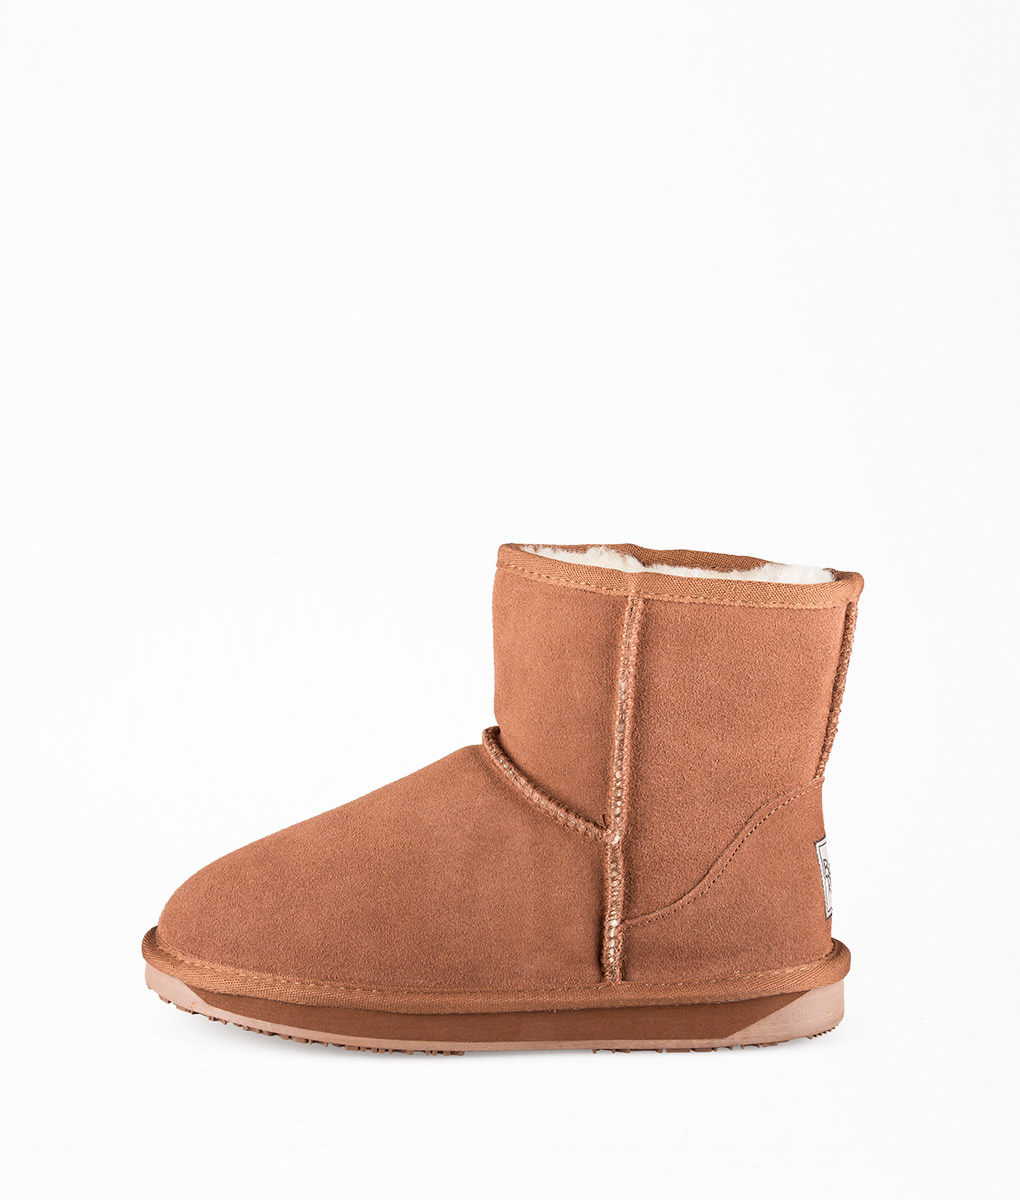 BOOROO Women Ankle Boots 1006 MINNIE Hickory 79,99